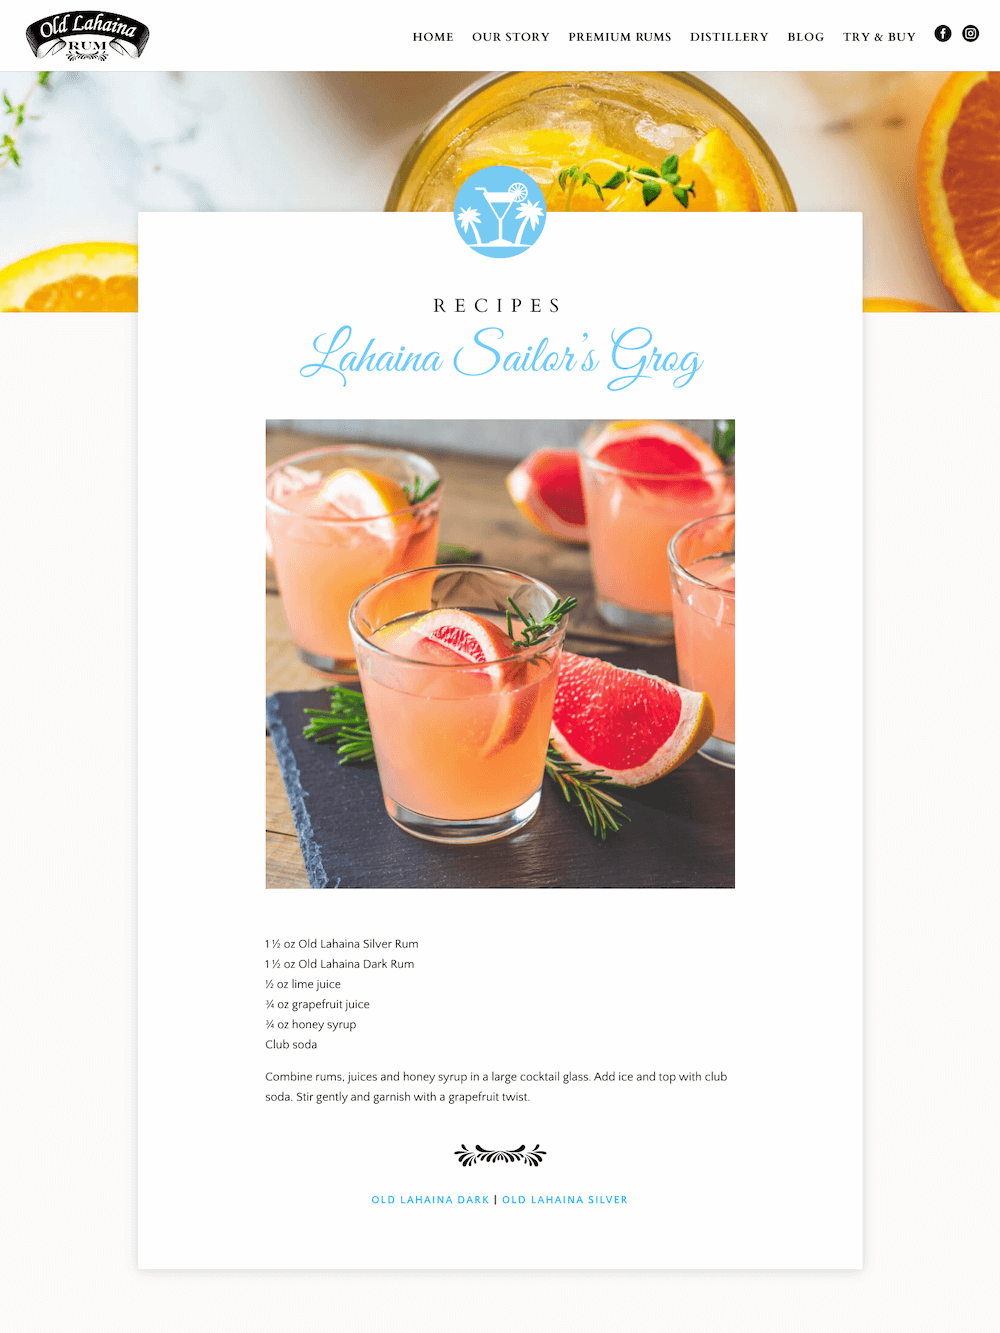 Old Lahaina Rum — Custom Blog Post Layout